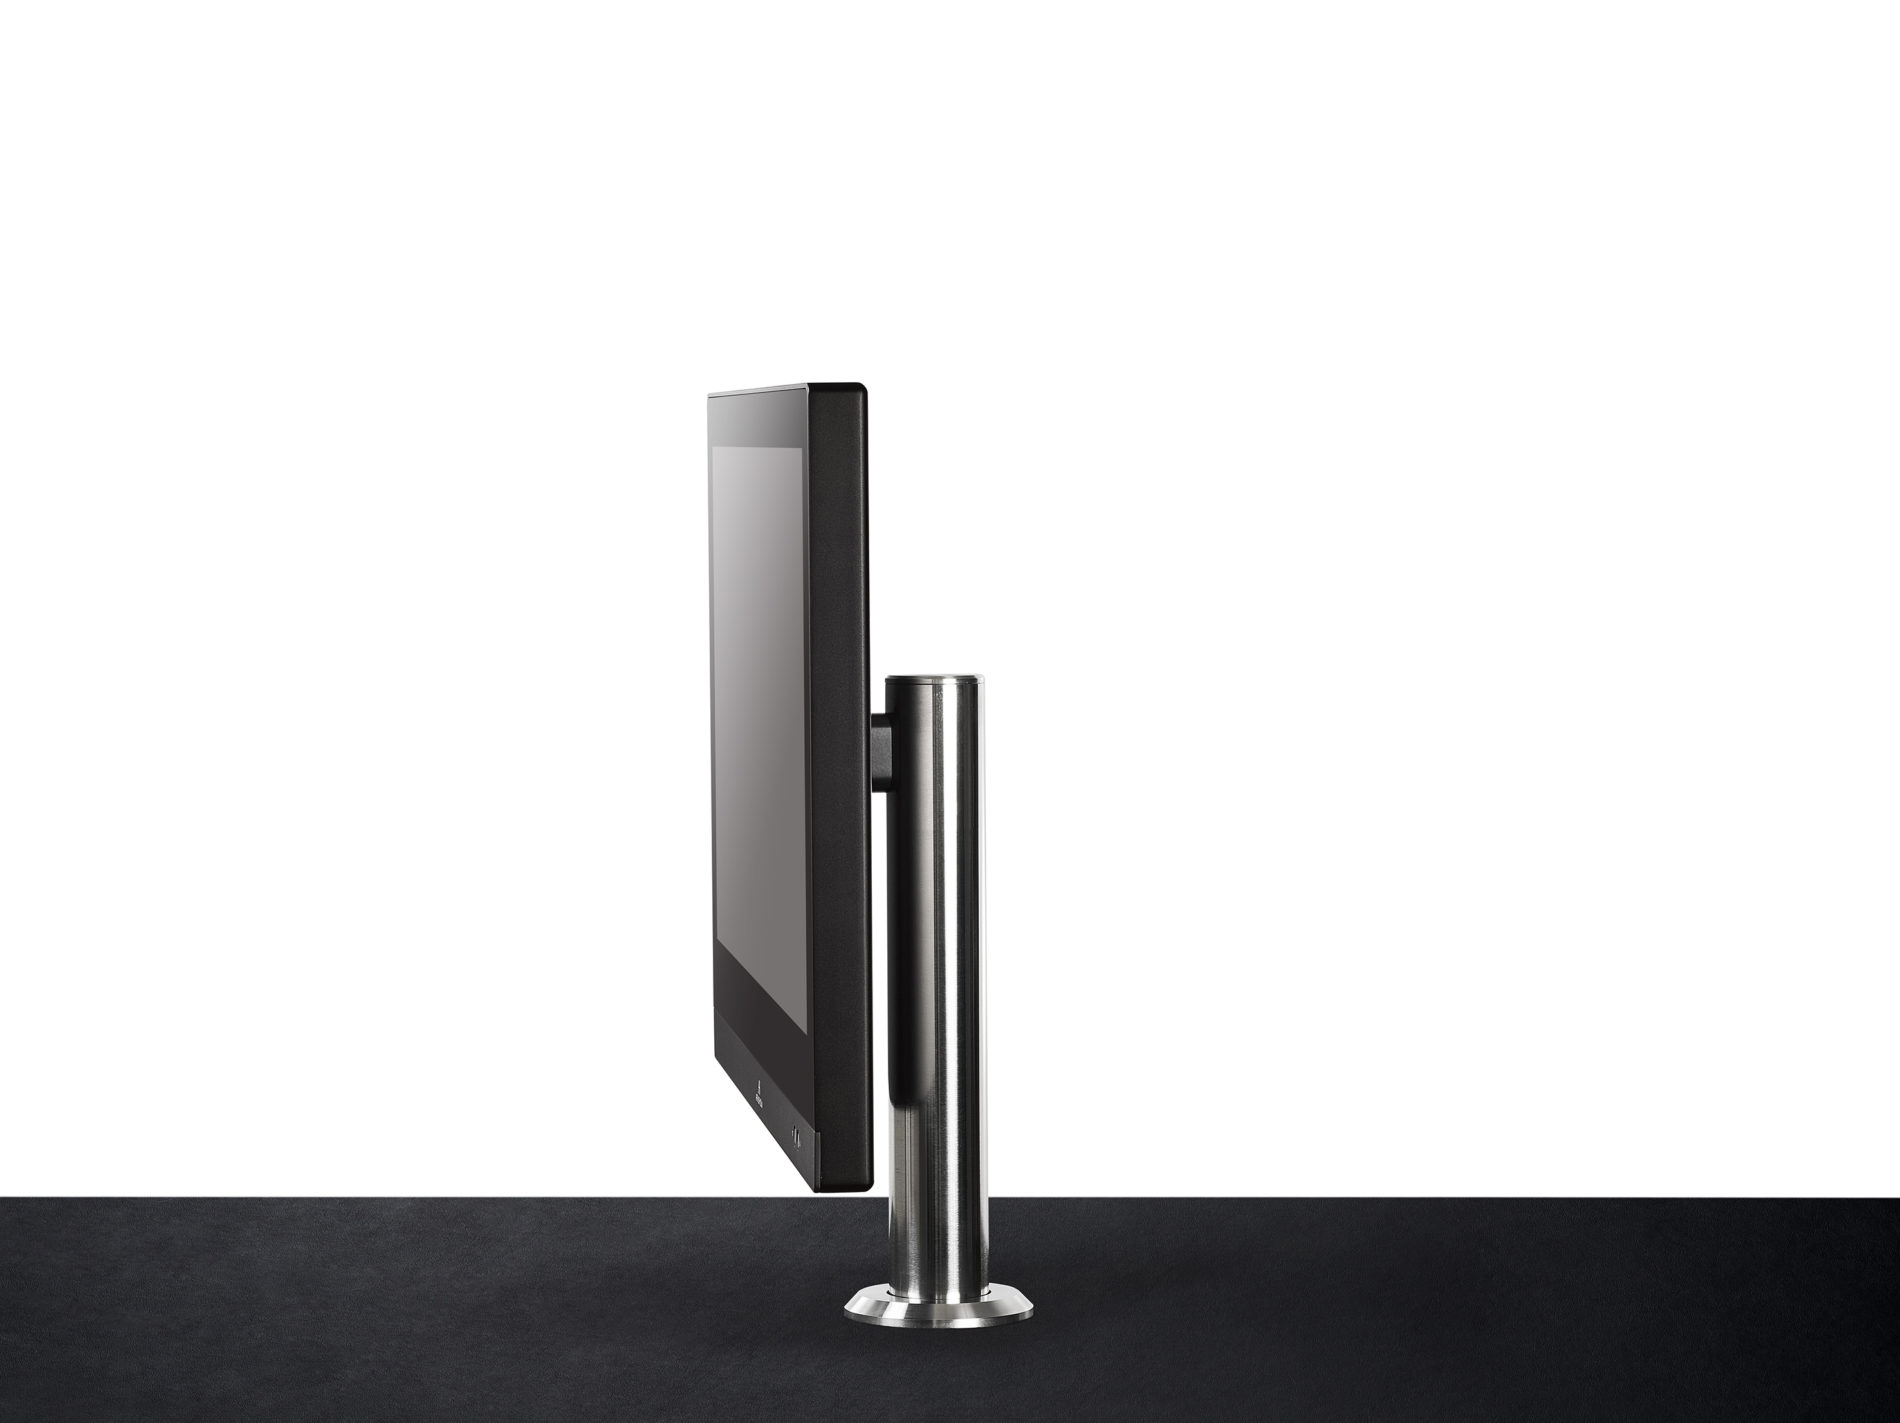 reception monitor for hotels and welcome counters